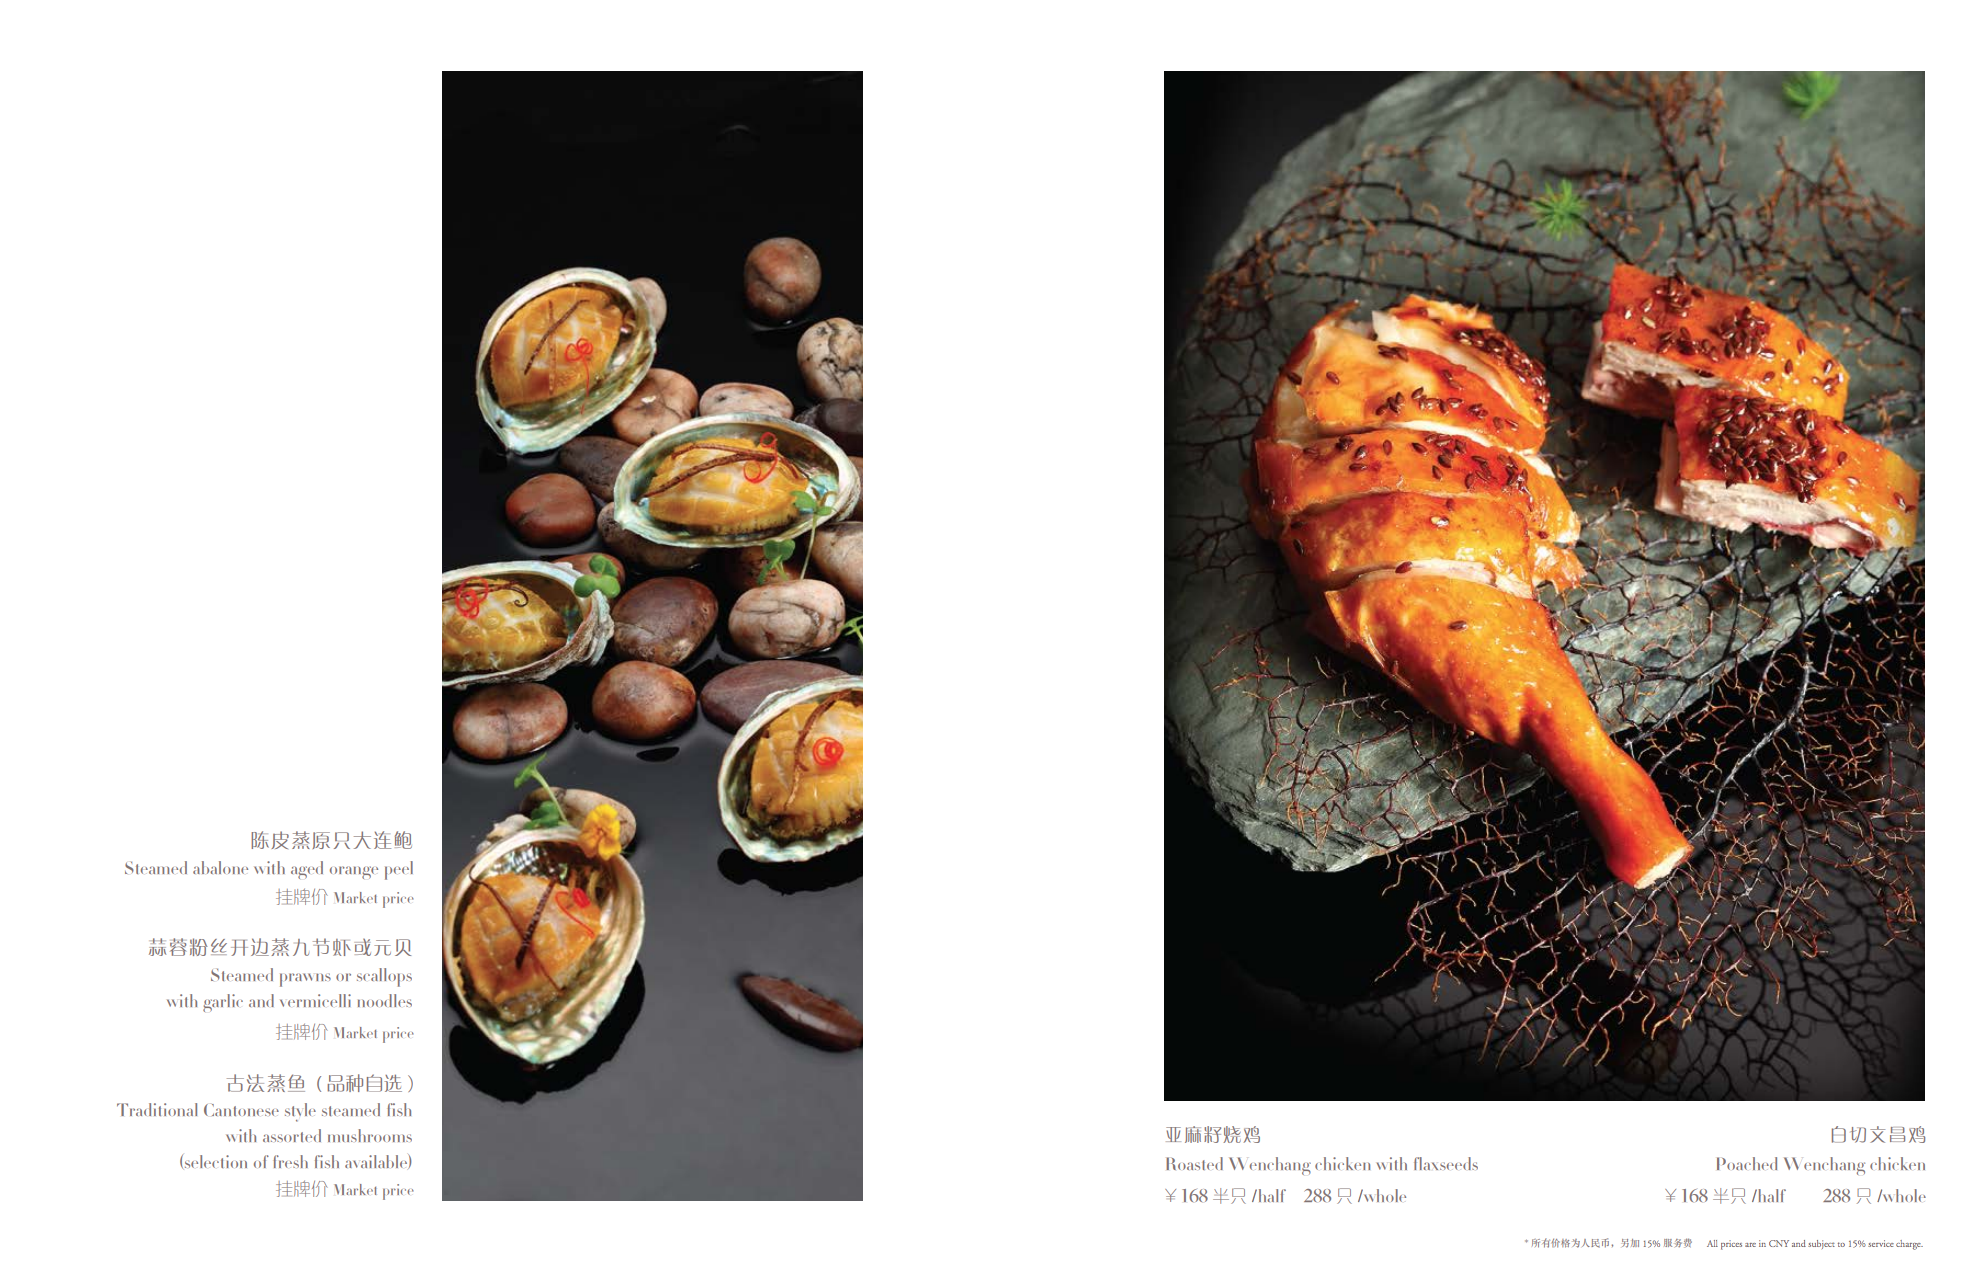 The recommended dishes from Jiang by Chef Fei in Guangzhou.